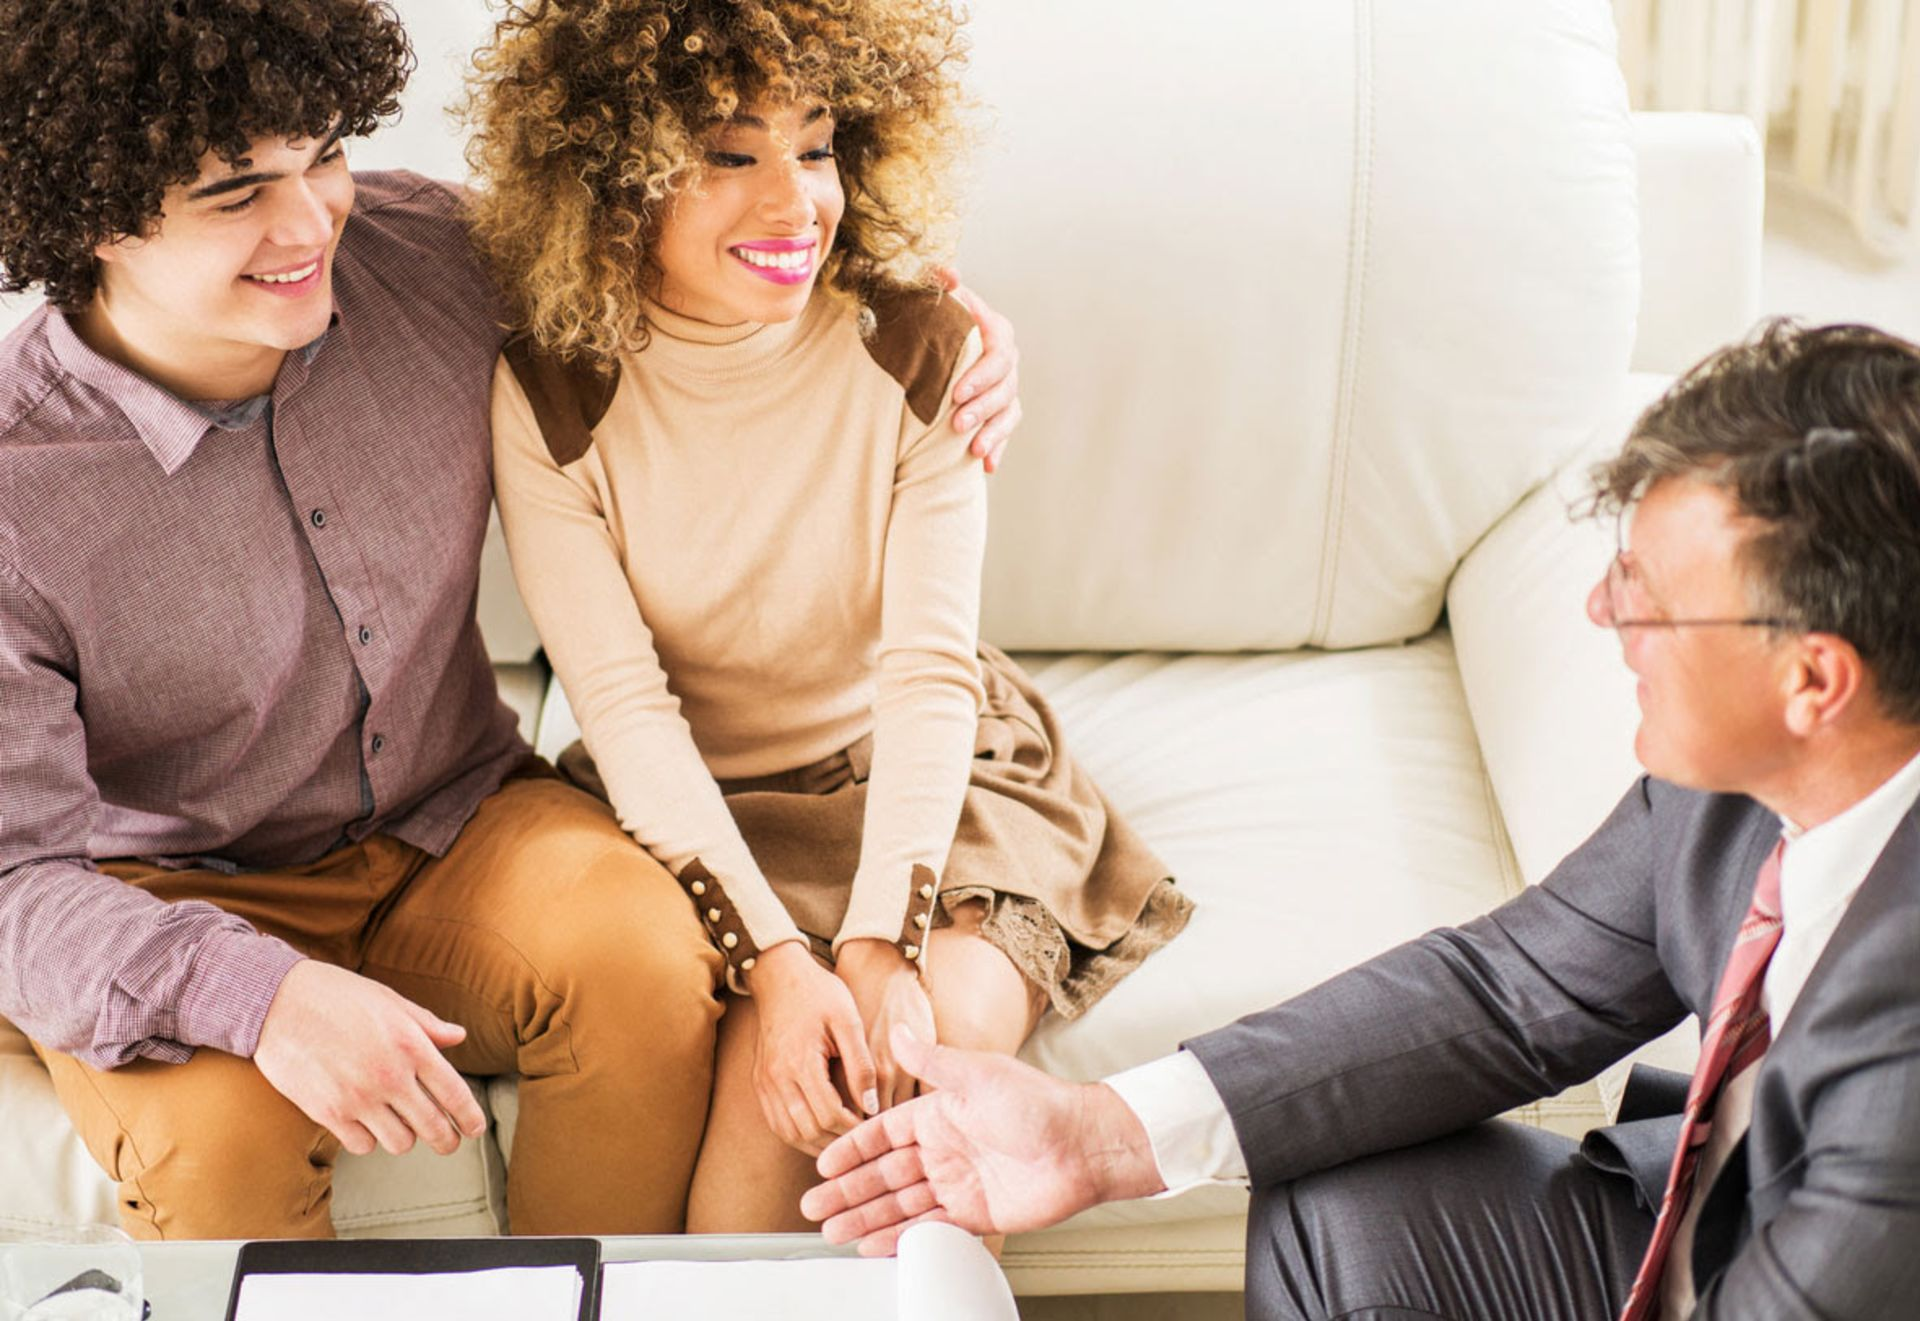 MILLENNIALS PATIENT, THRIFTY WHEN IT COMES TO HOMEOWNERSHIP